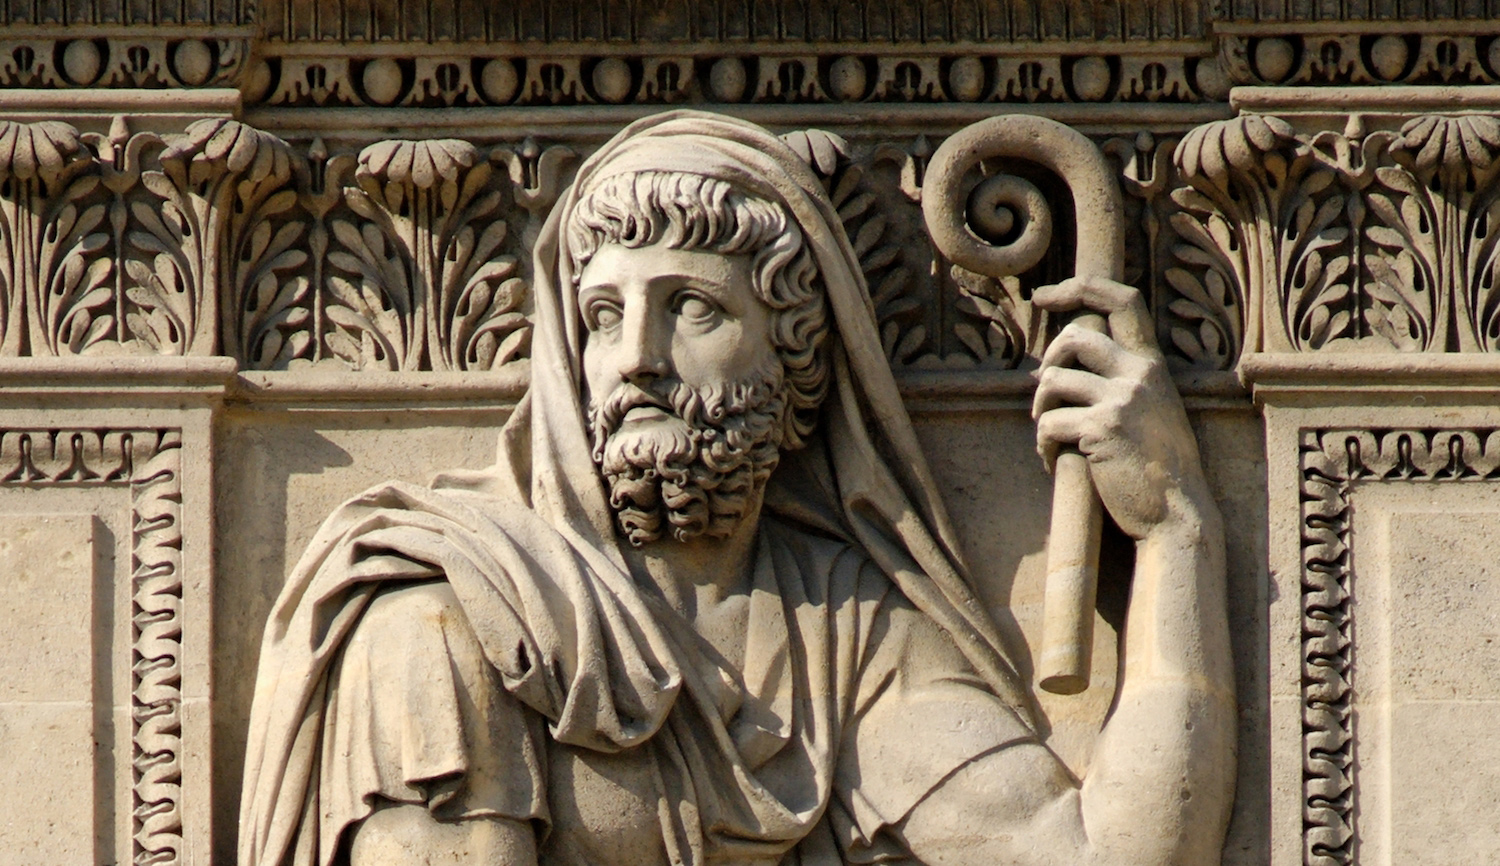 An 1806 relief of the Greek historian Herodotus by Jean-Guillaume Moitte currently in the Louvre, Paris. Wikipedia.